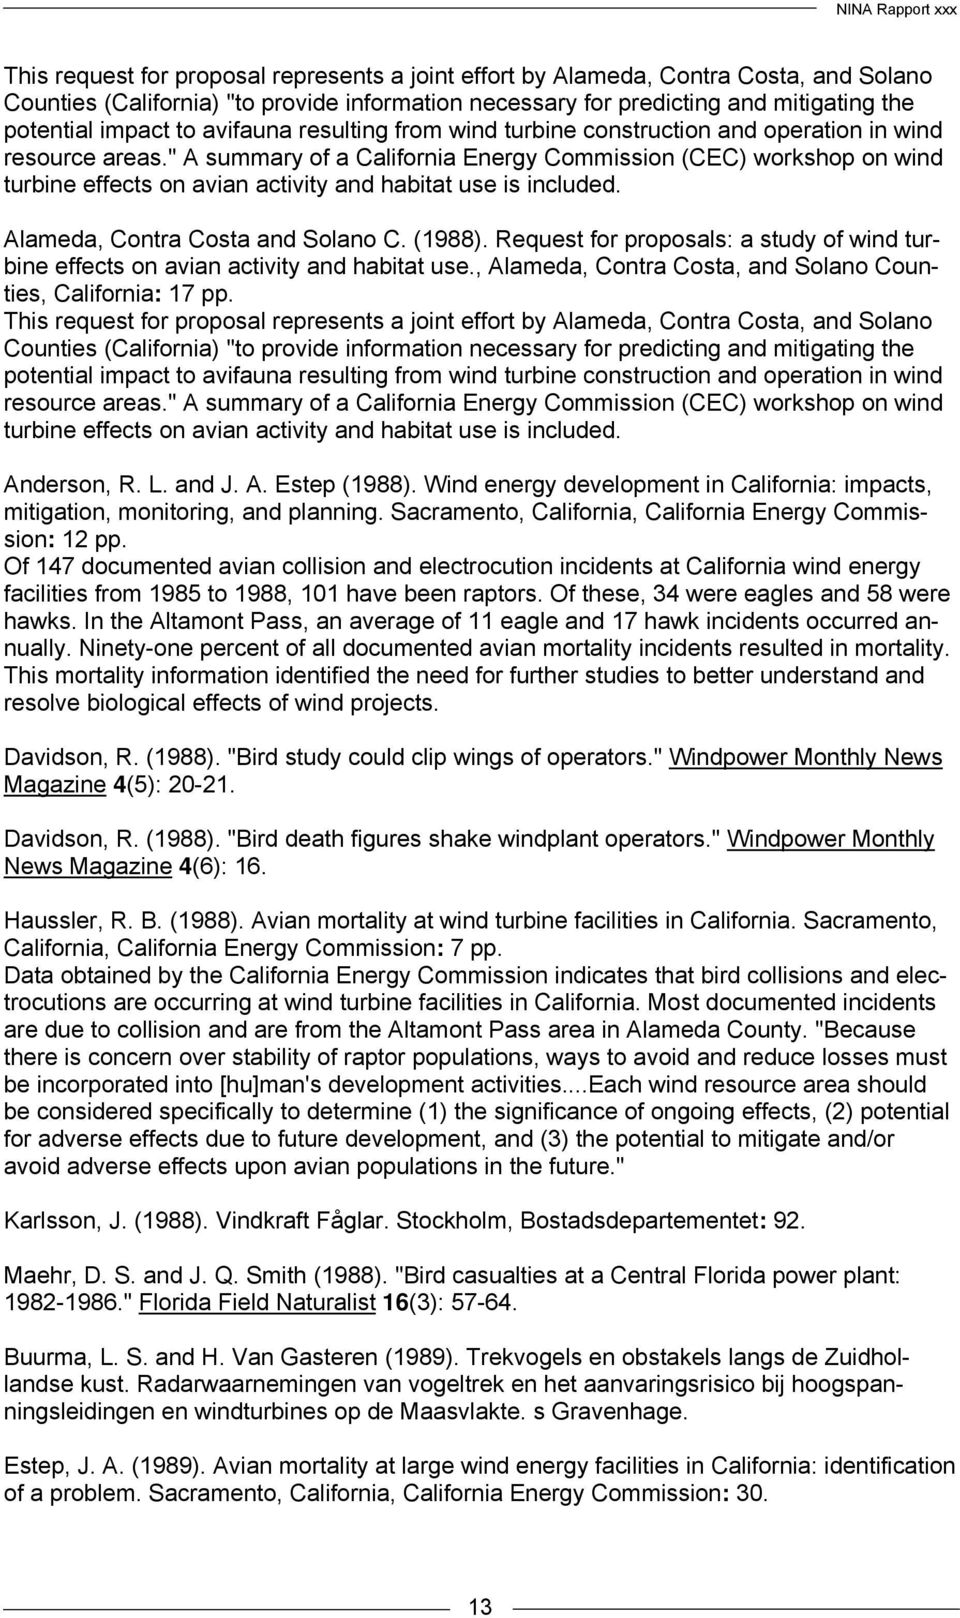 """ A summary of a California Energy Commission (CEC) workshop on wind turbine effects on avian activity and habitat use is included. Alameda, Contra Costa and Solano C. (1988)."